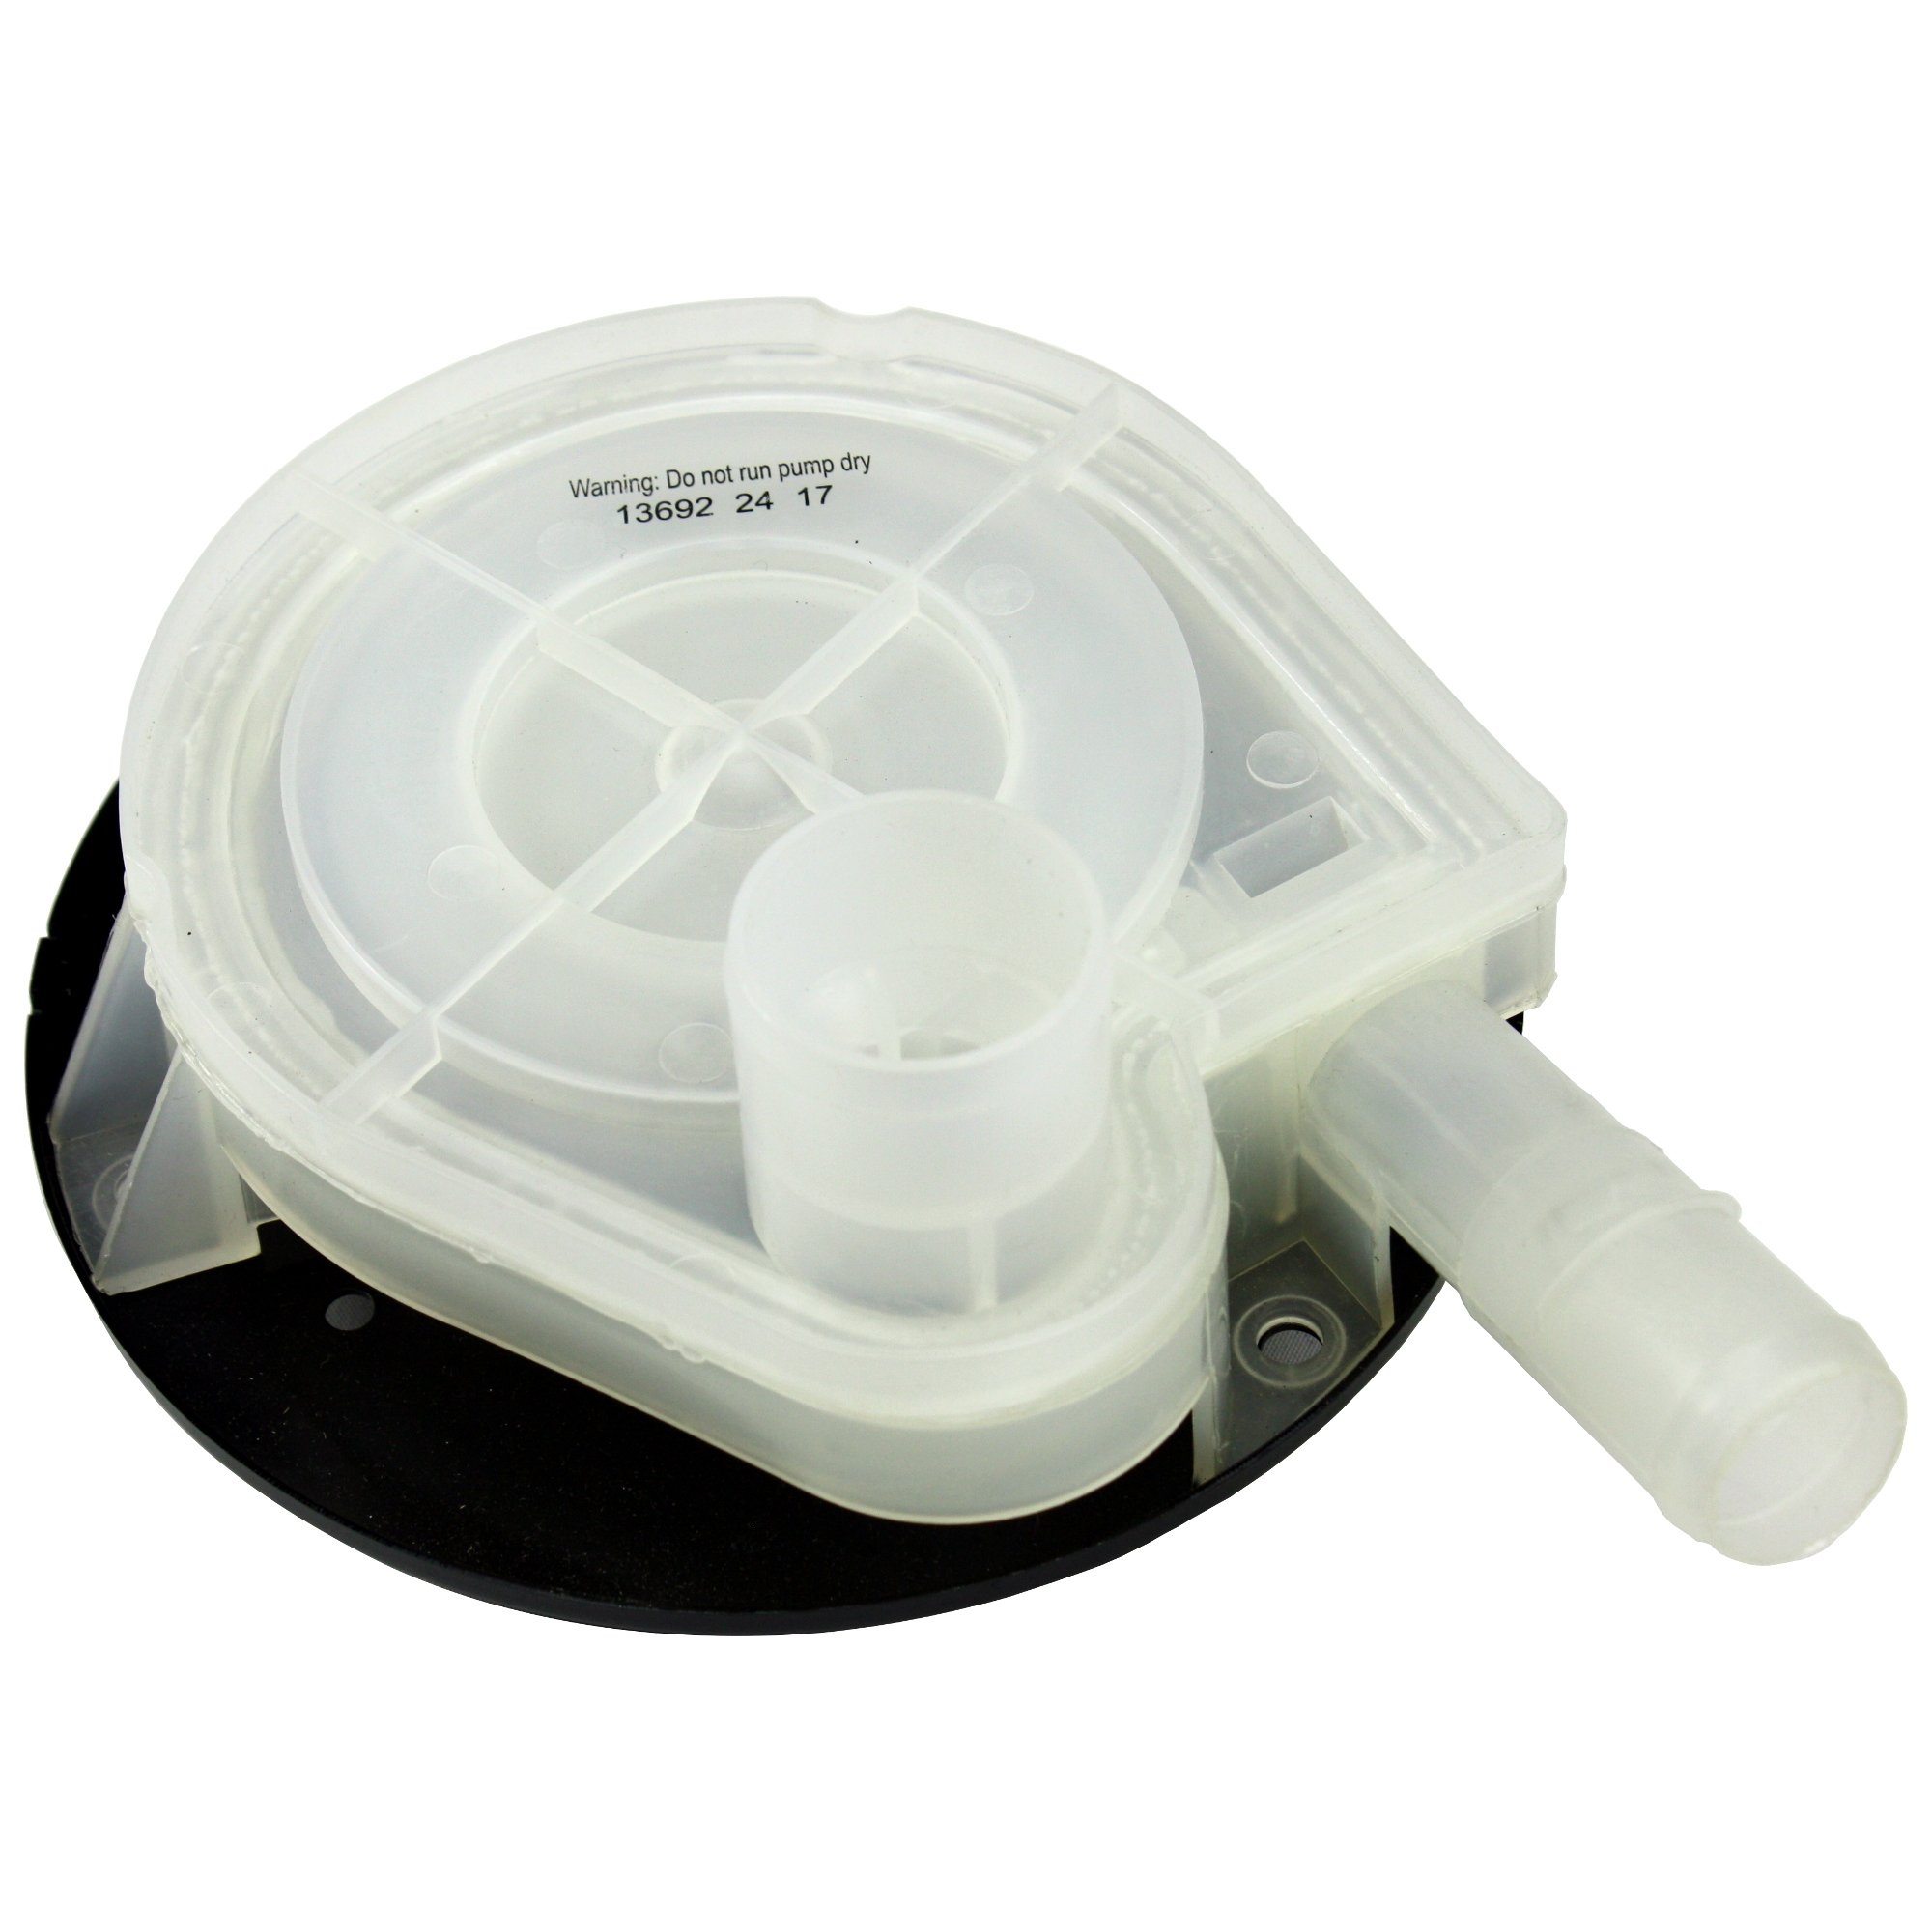 Supplying Demand 21002240 Clothes Washer Drain Pump Replaces WP35-6780 35-6780